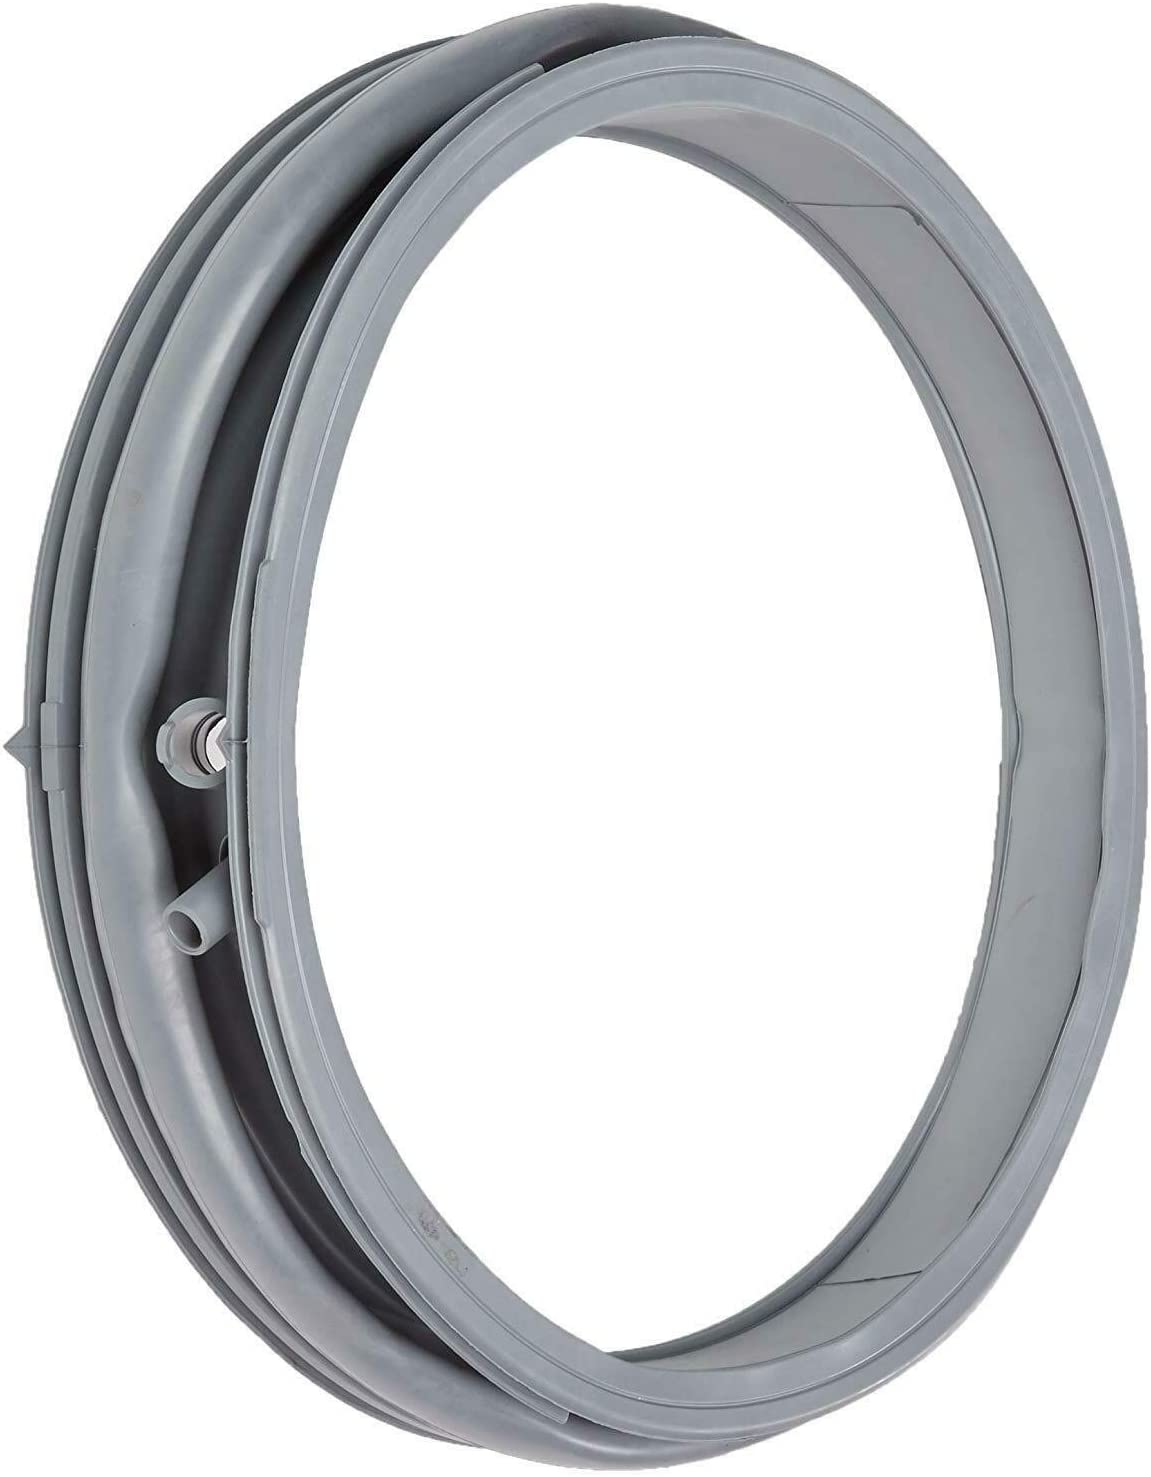 NEW 134616100 Washer Door Bellow Seal for Electrolux, Frigidaire, Kenmore made by OEM Manufacturer, 1482856, 7134616100, AP4363896, PS2342392, 1482856, AP4363896 by PartsForLess -1 YEAR WARRANTY